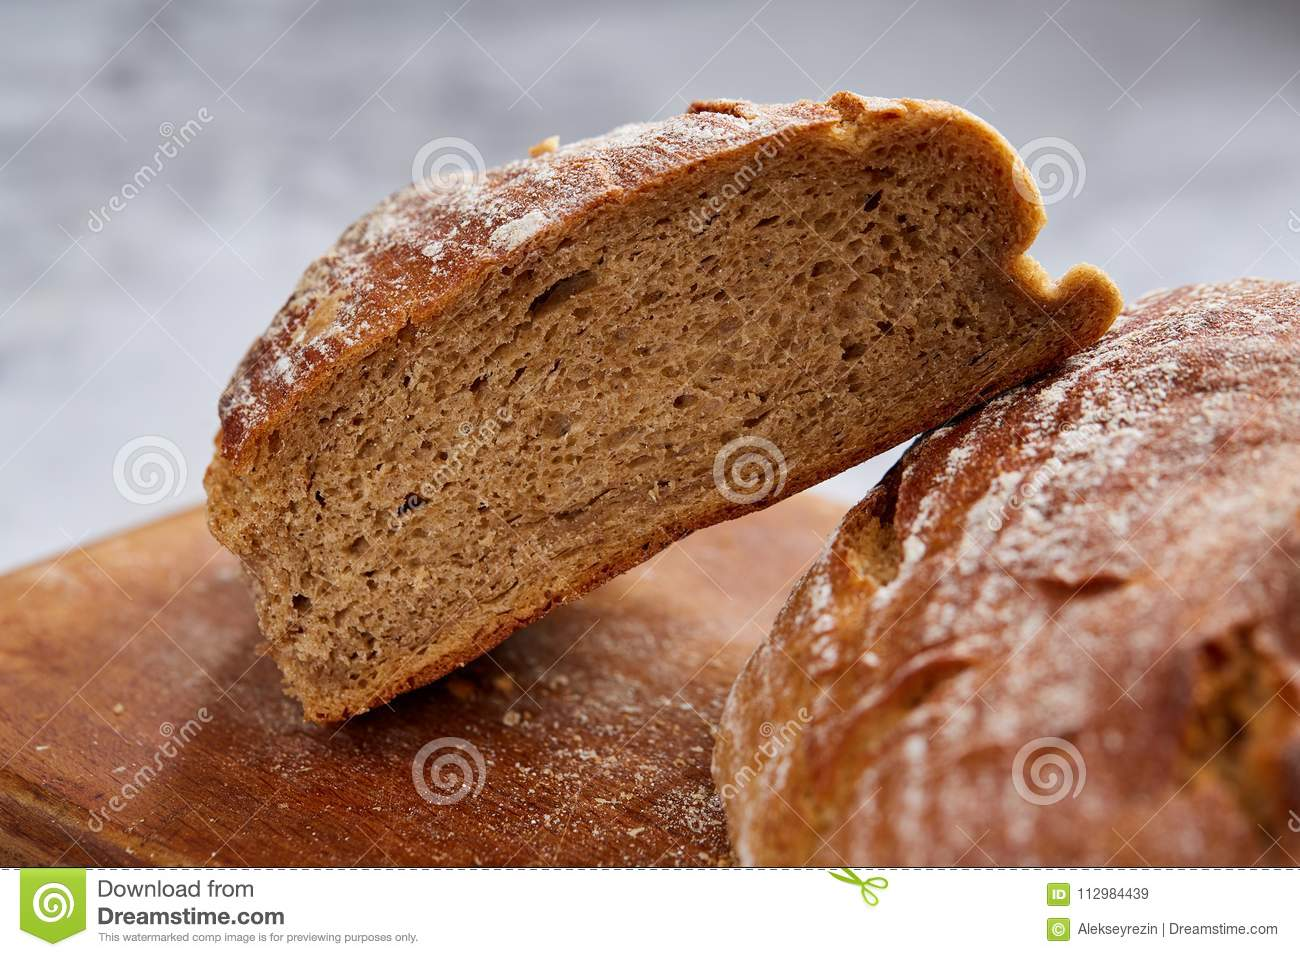 Fresh rye bread loaf on a wooden chopping board over white textured background, shallow depth of field